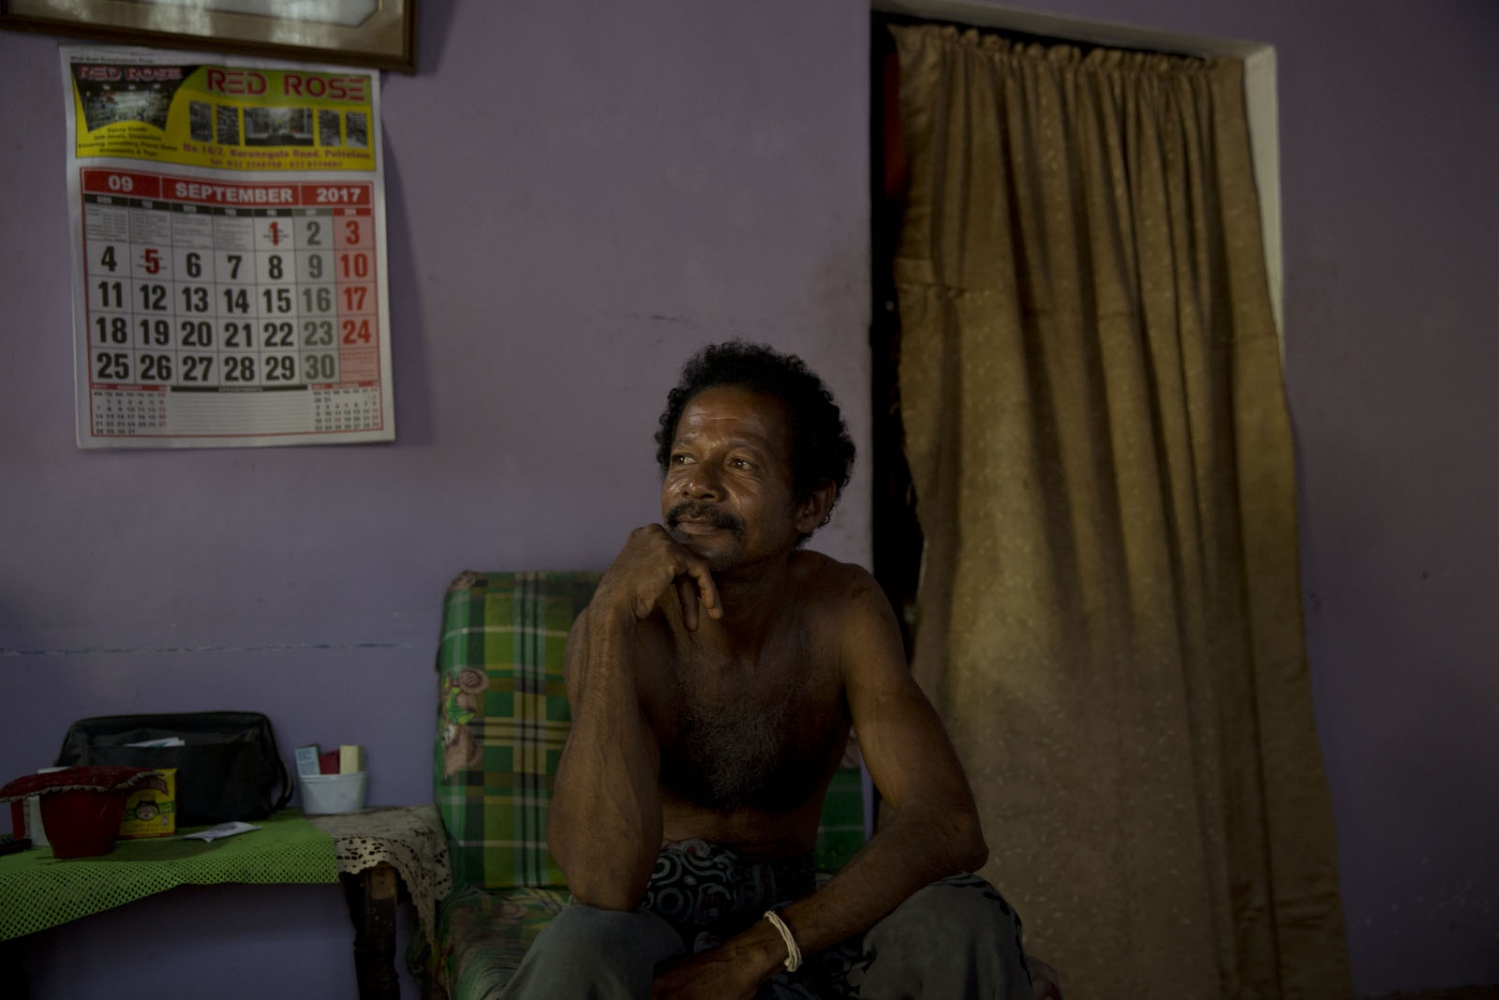 Johnson sits in the front room of his house in the Good Shed area of Puttalam town. Puttalam, Sri Lanka - September 2017